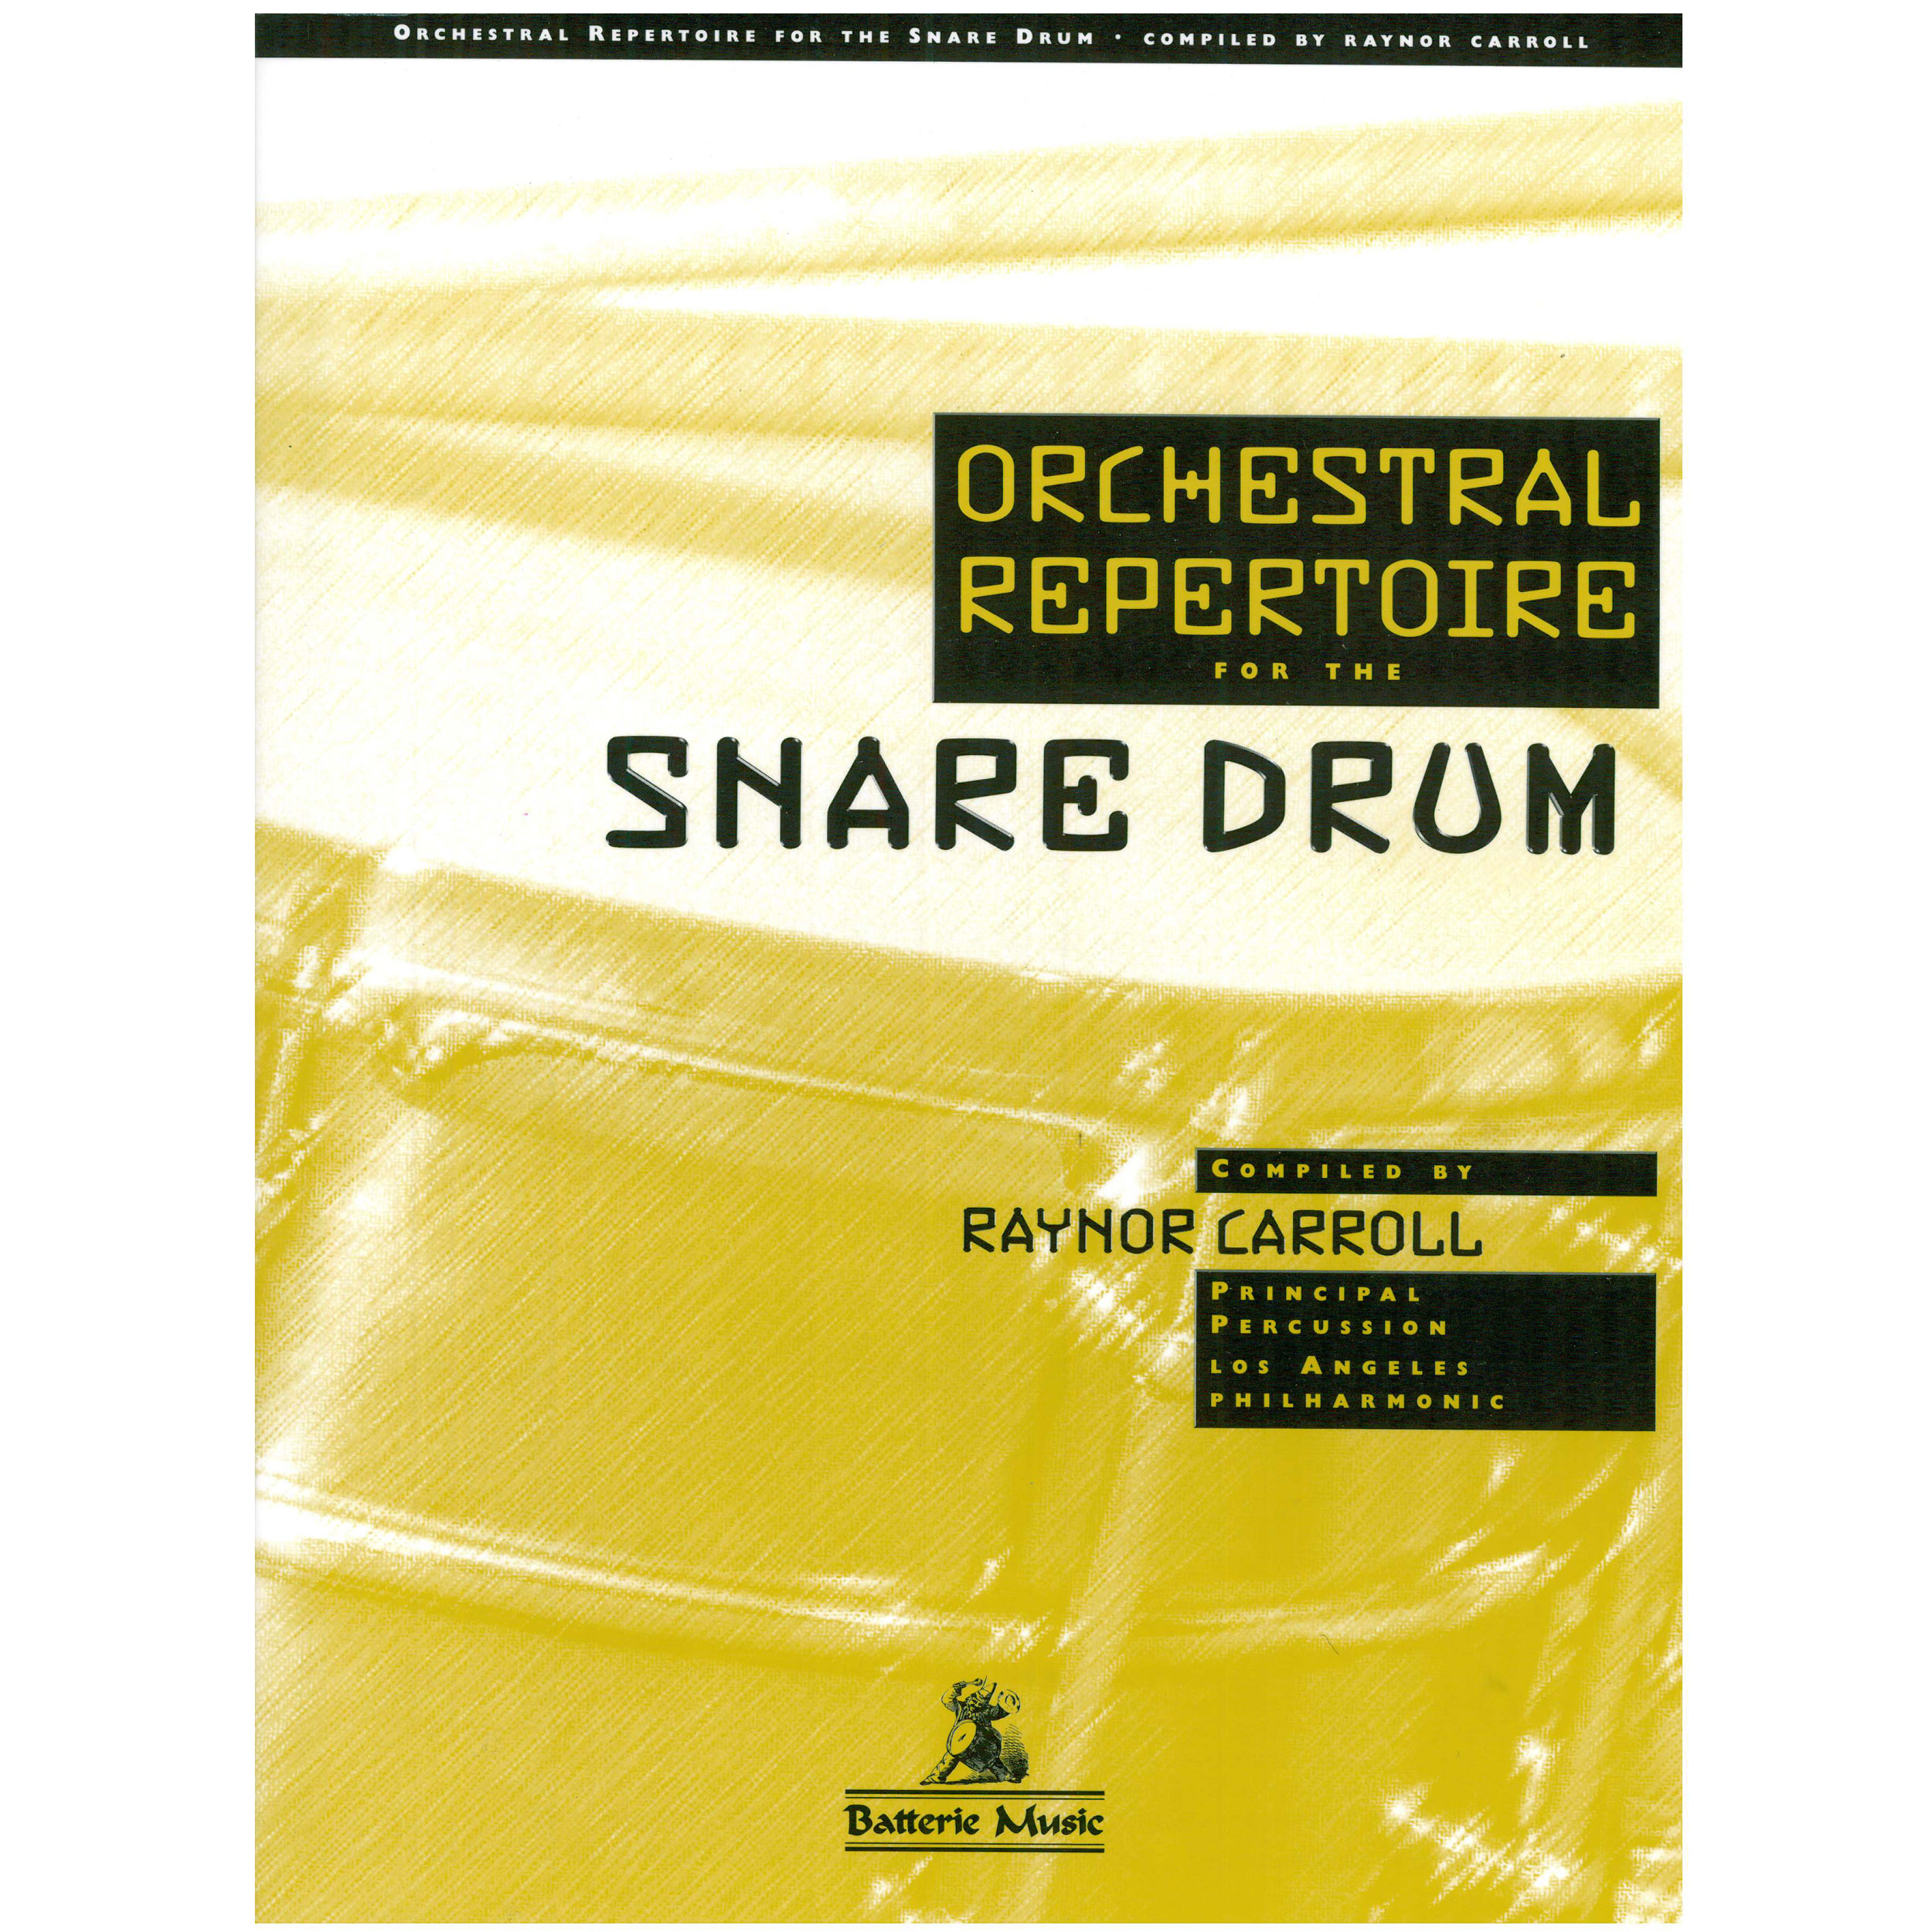 Orchestral Repertoire for the Snare Drum by Raynor Carroll